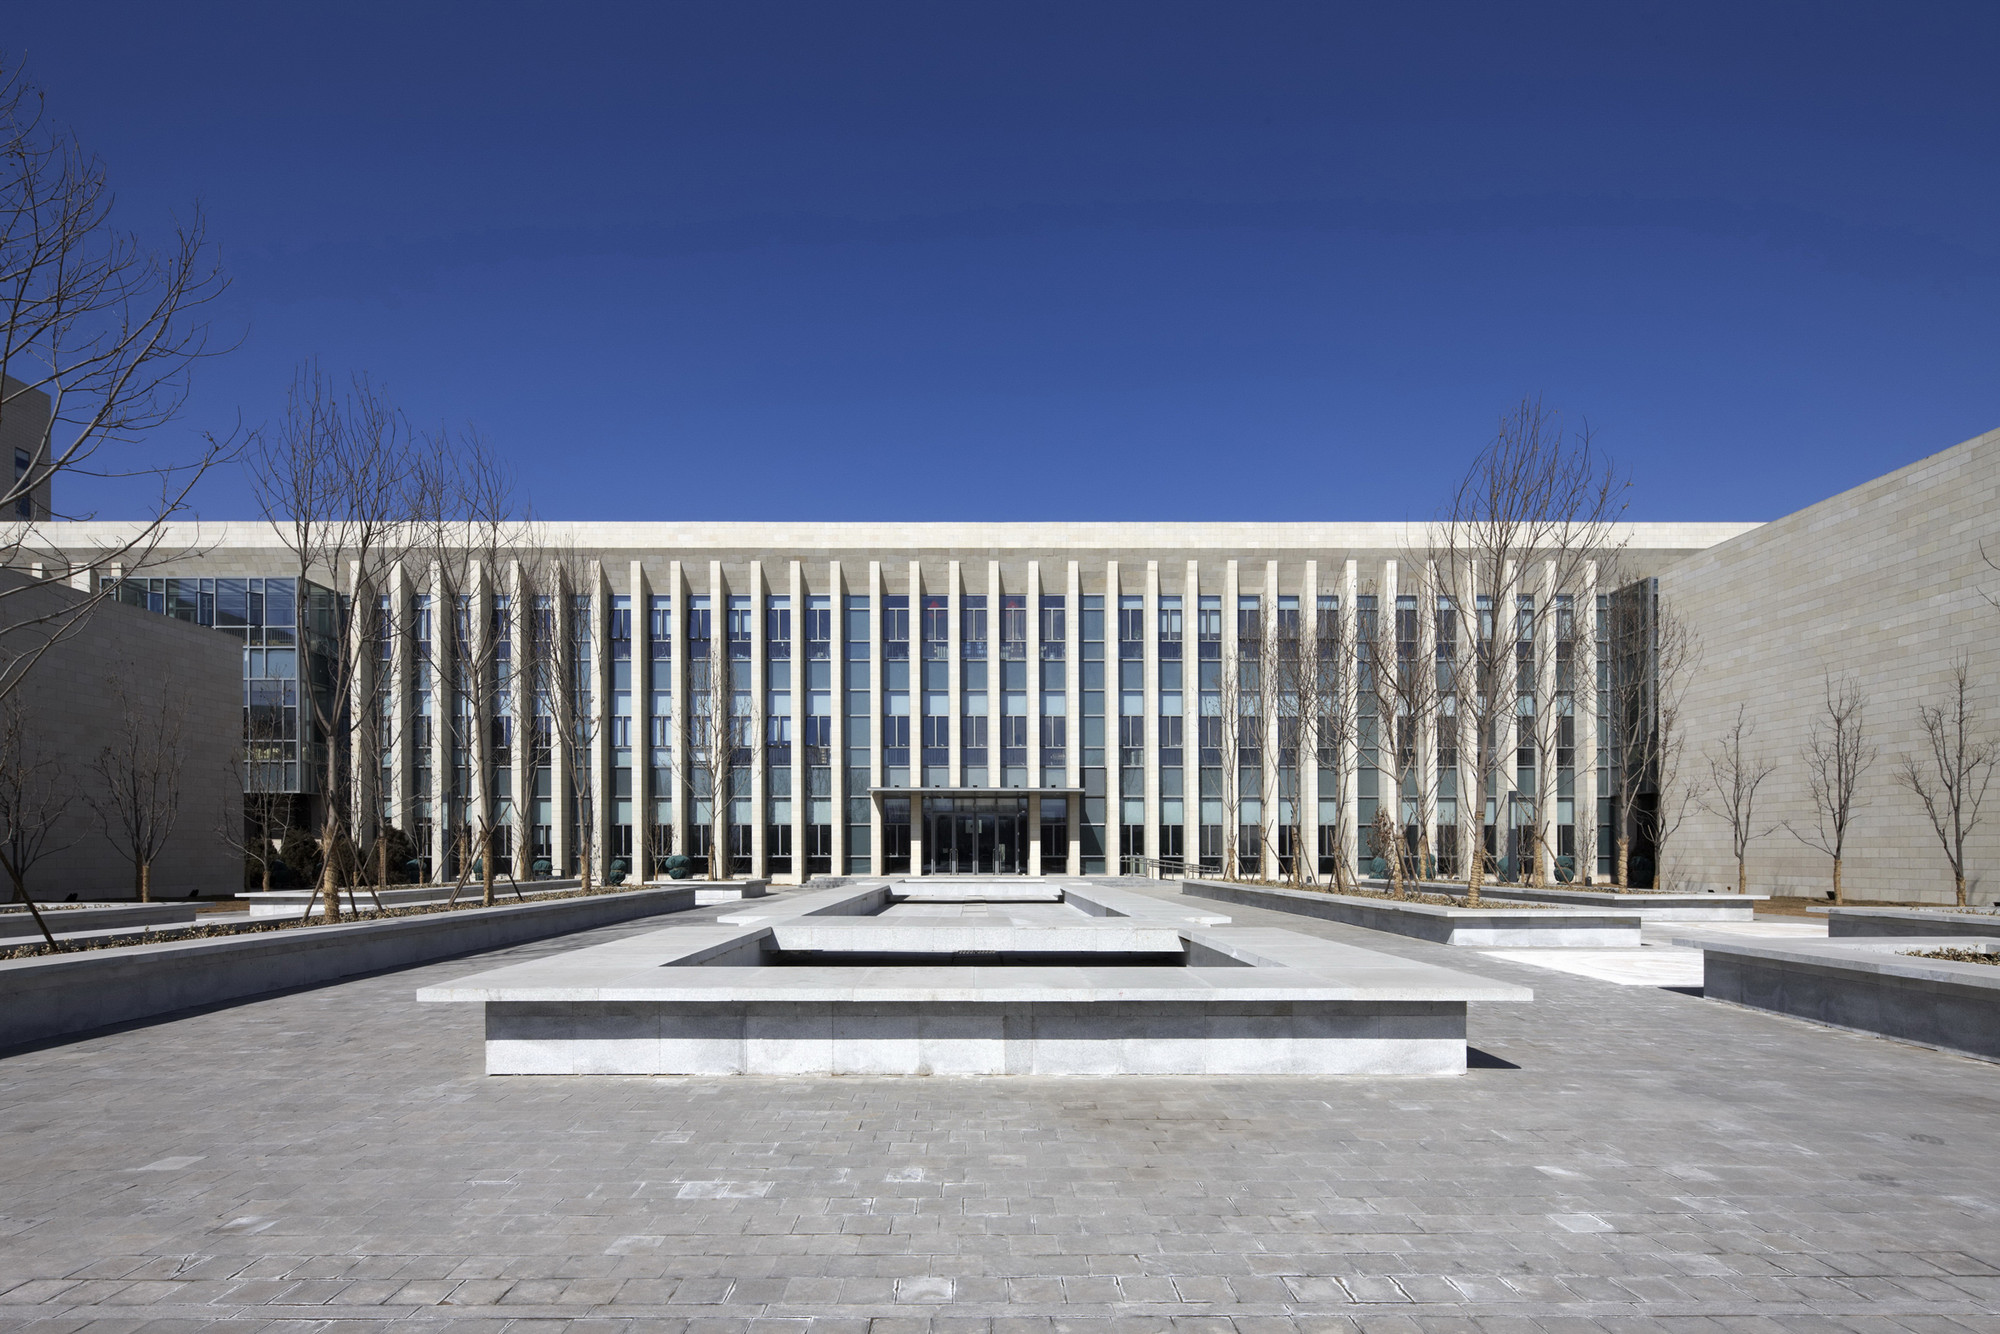 Wanda Academy / HYHW Architecture Consulting